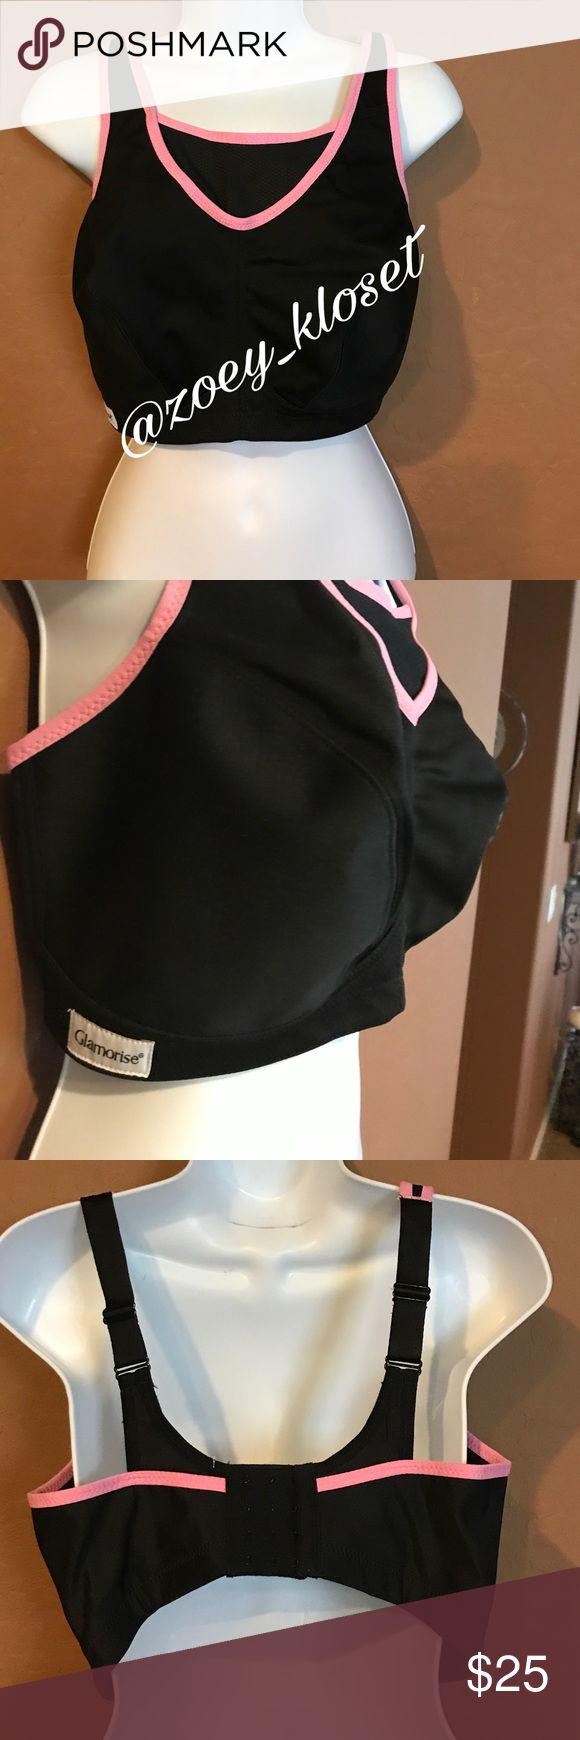 🆕 (PLUS) 36F Glamorise Black Pink  Sports Bra Never Worn, Adjustable Wide Straps, 3 Back Row Closure, Super Comfortable for working out. Glamorise Intimates & Sleepwear Shapewear